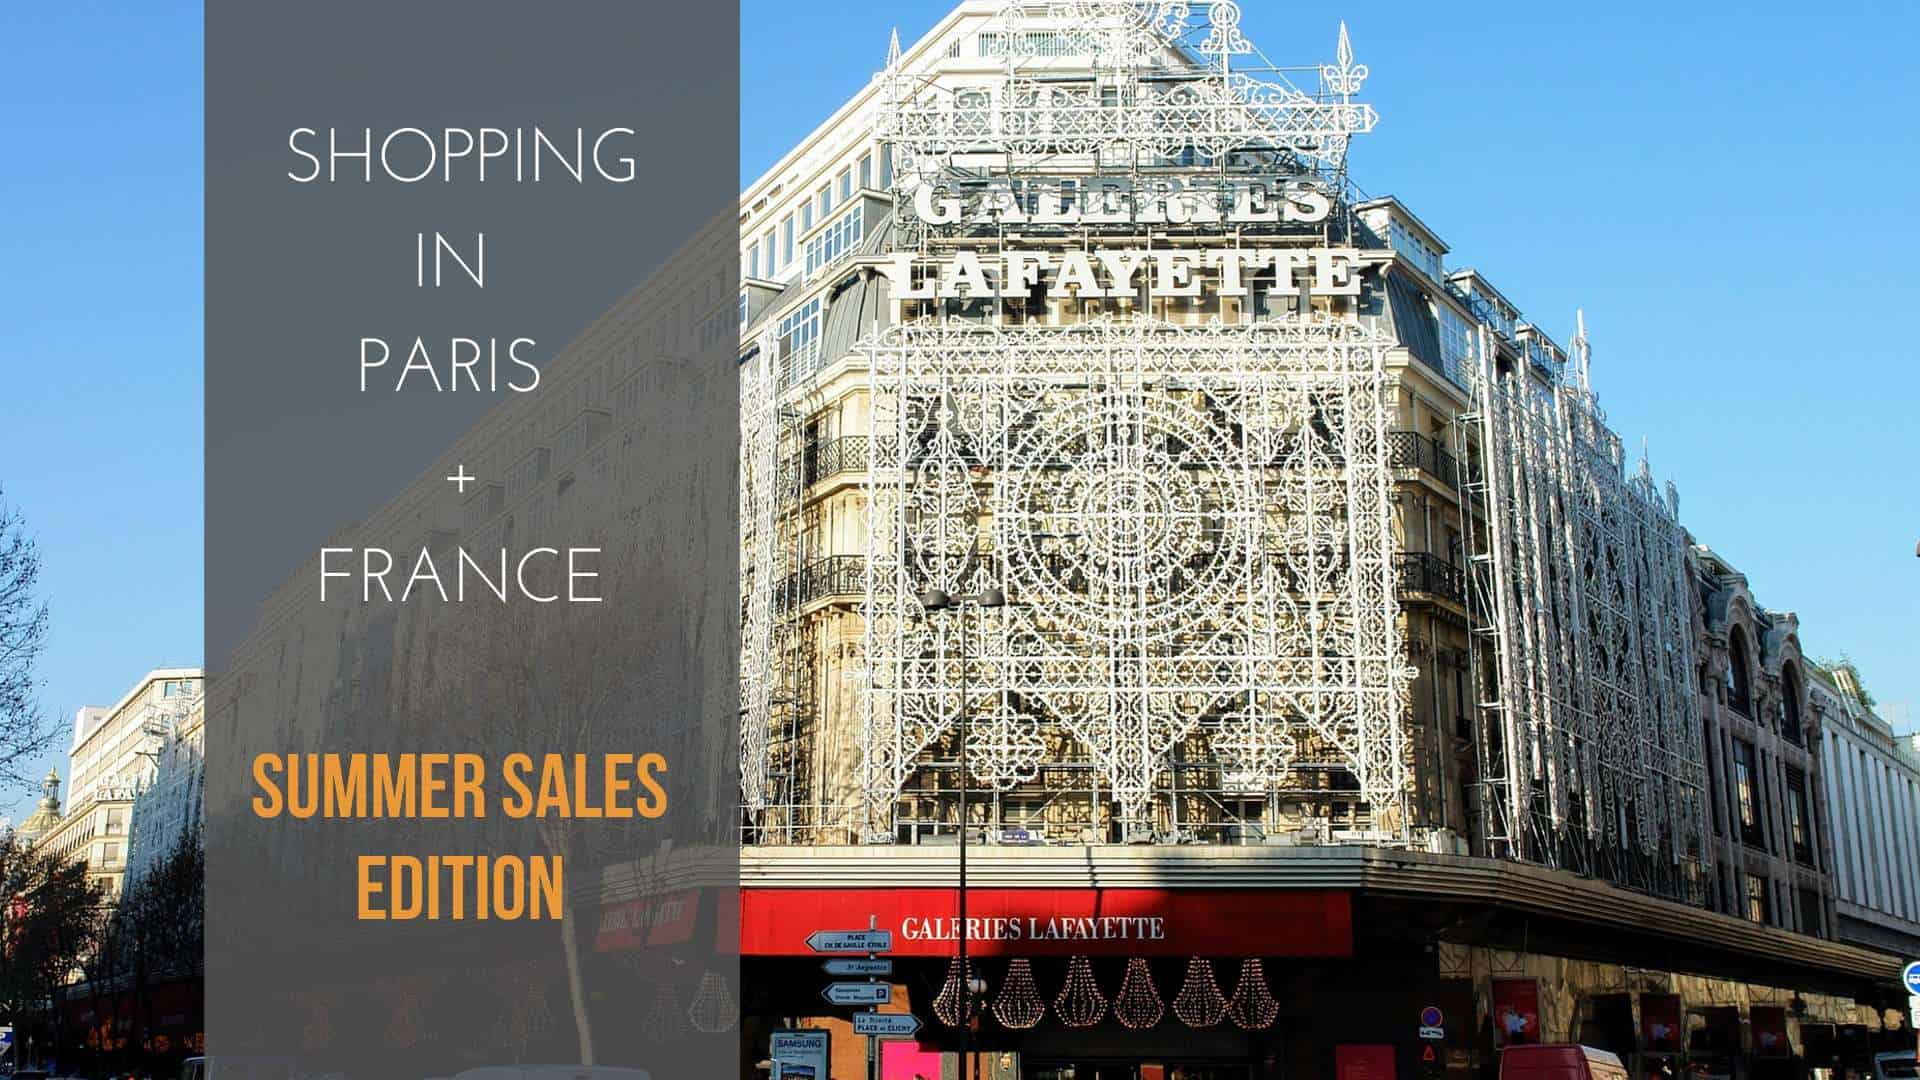 Where to go shopping in Paris and France - Summer Sales Edition